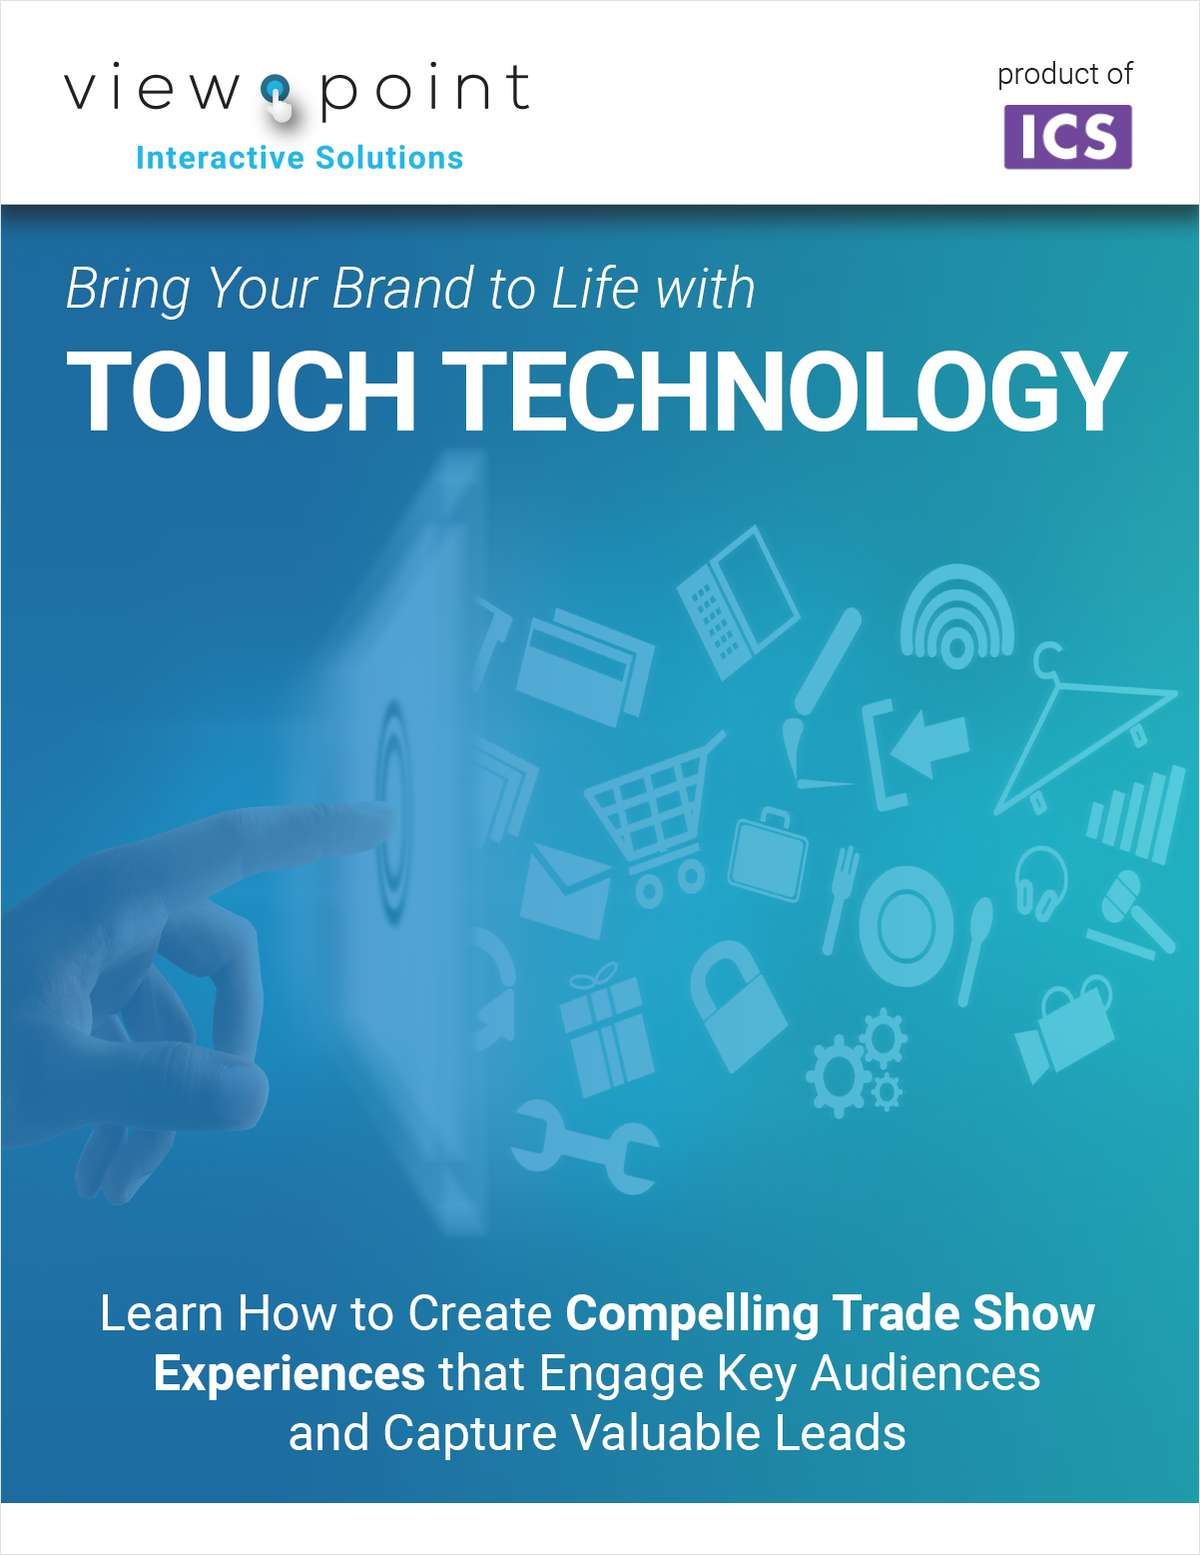 Learn How to Deliver Unforgettable Trade Show Experiences that Resonate with Buyers and Set Your Brand Apart